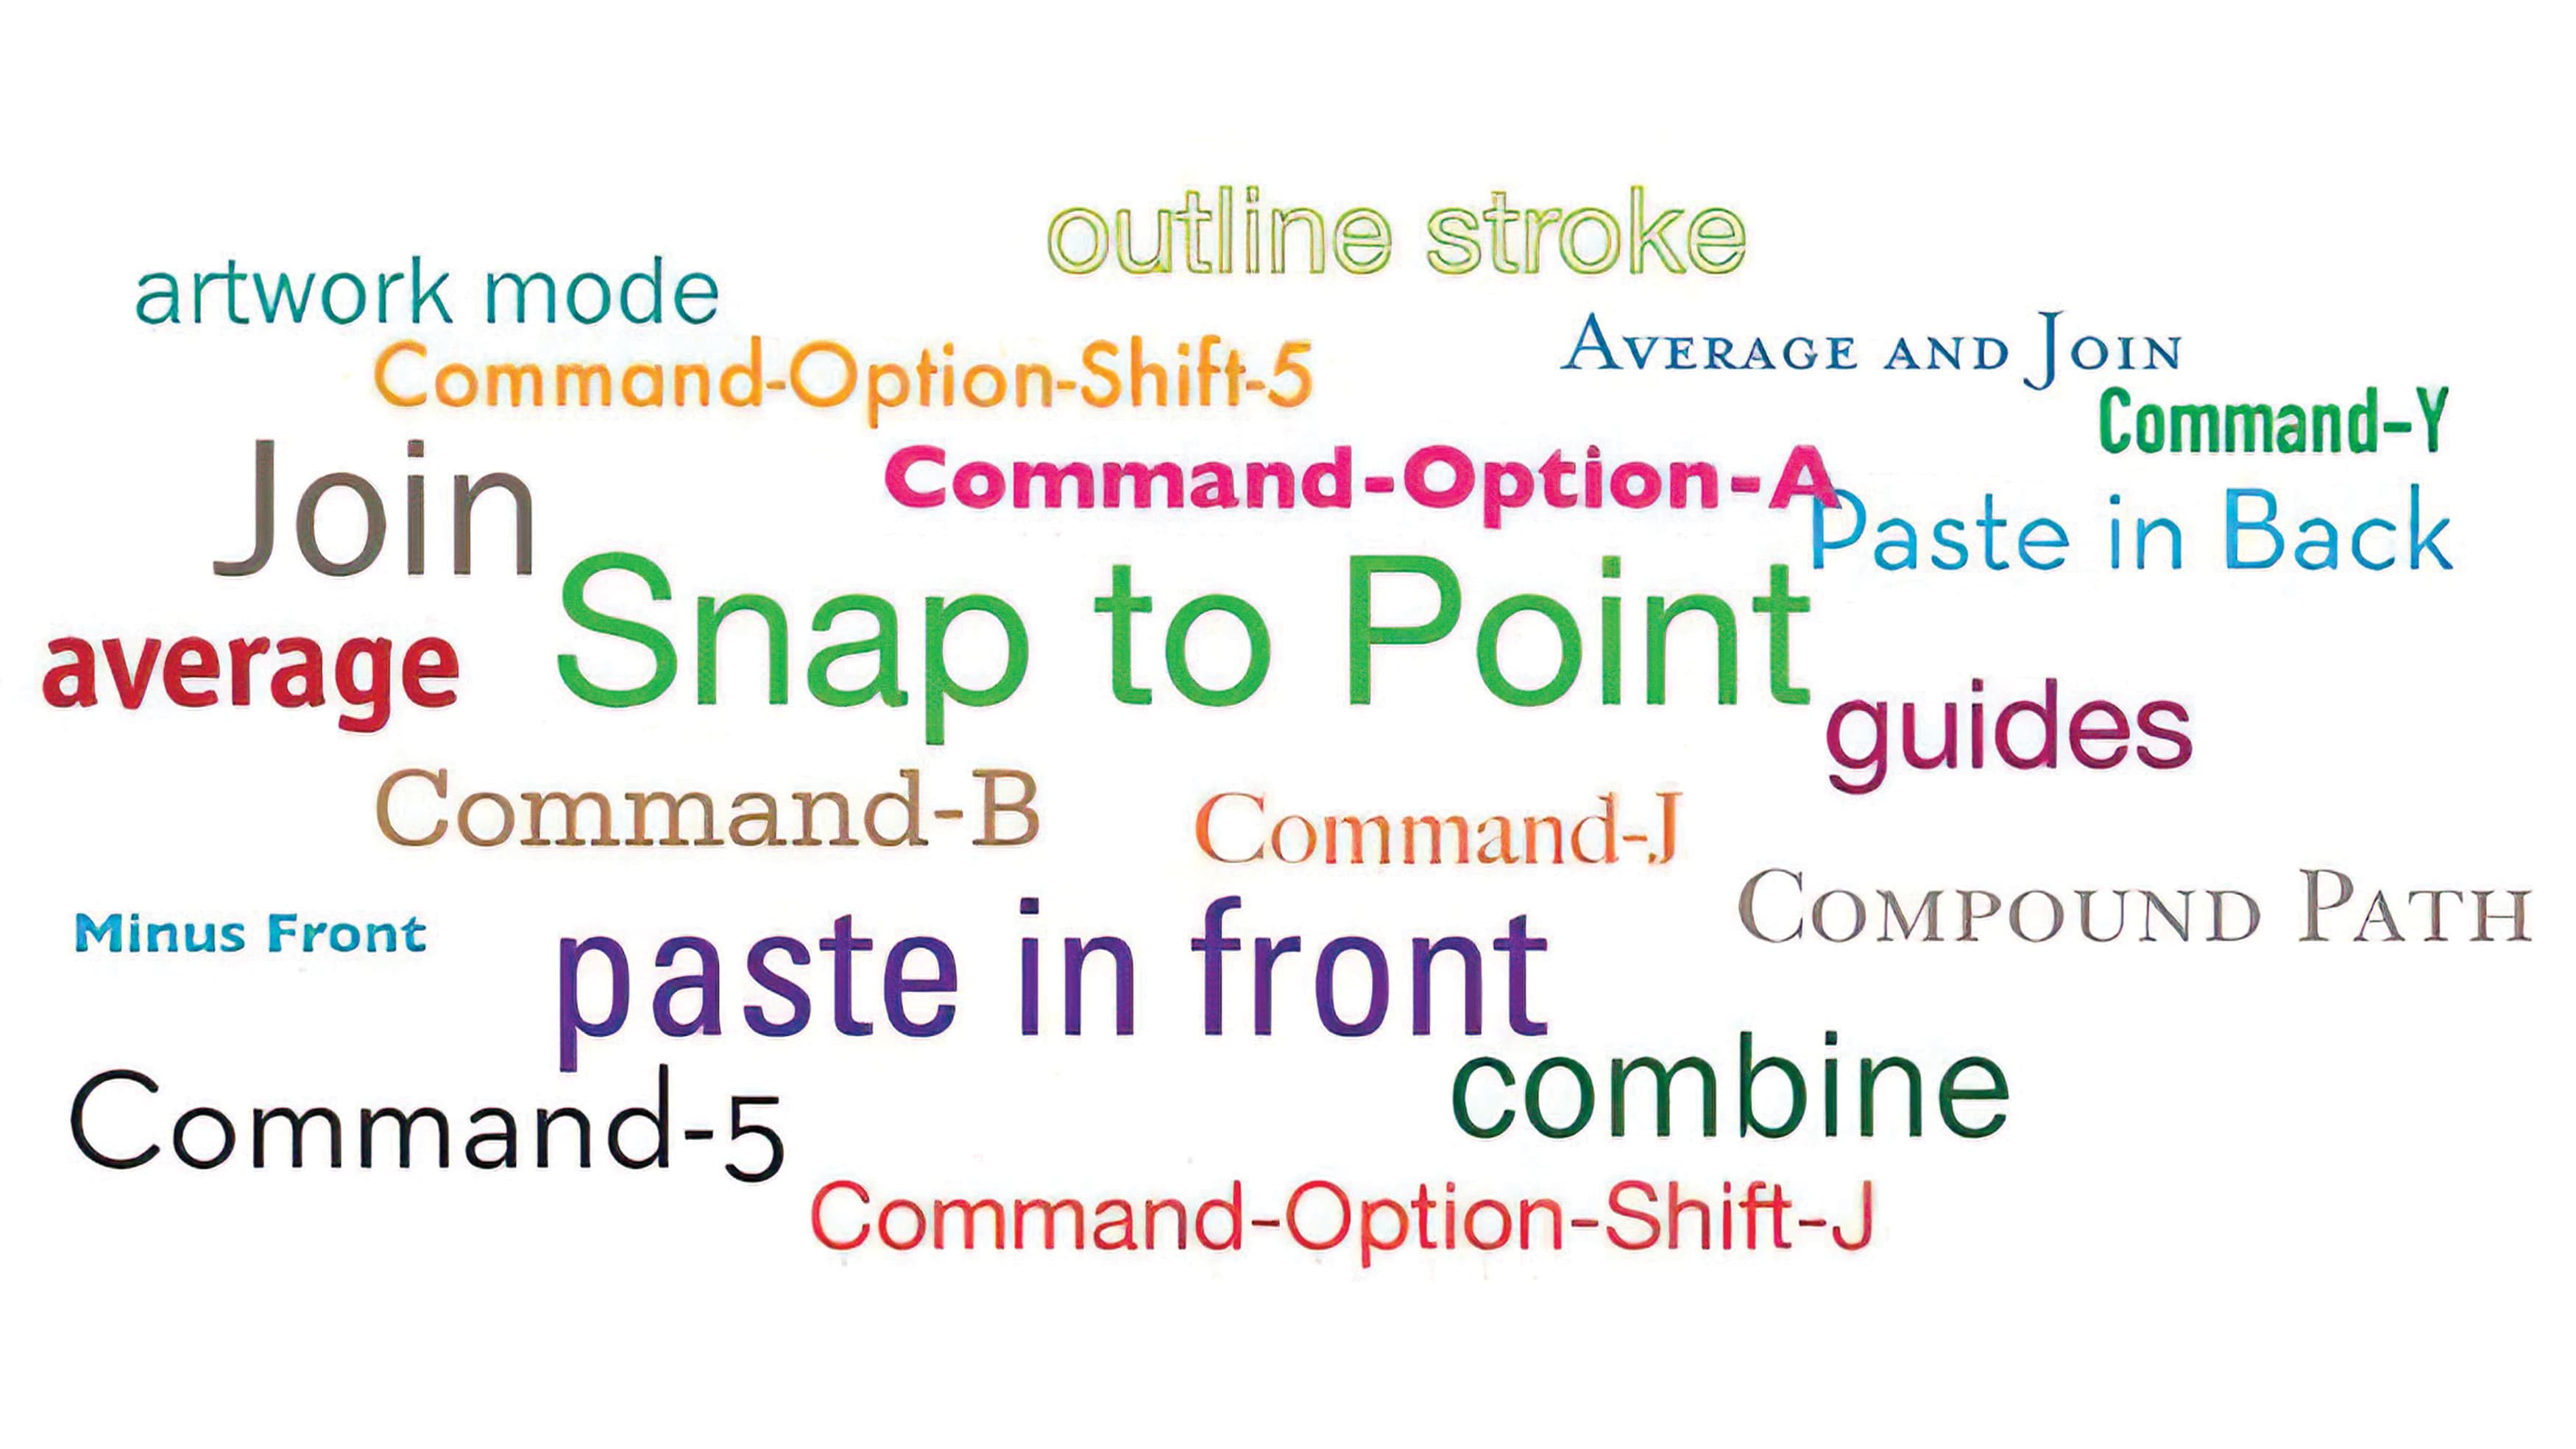 A typographic treatment of keyboard shortcuts typically used in Adobe Illustrator